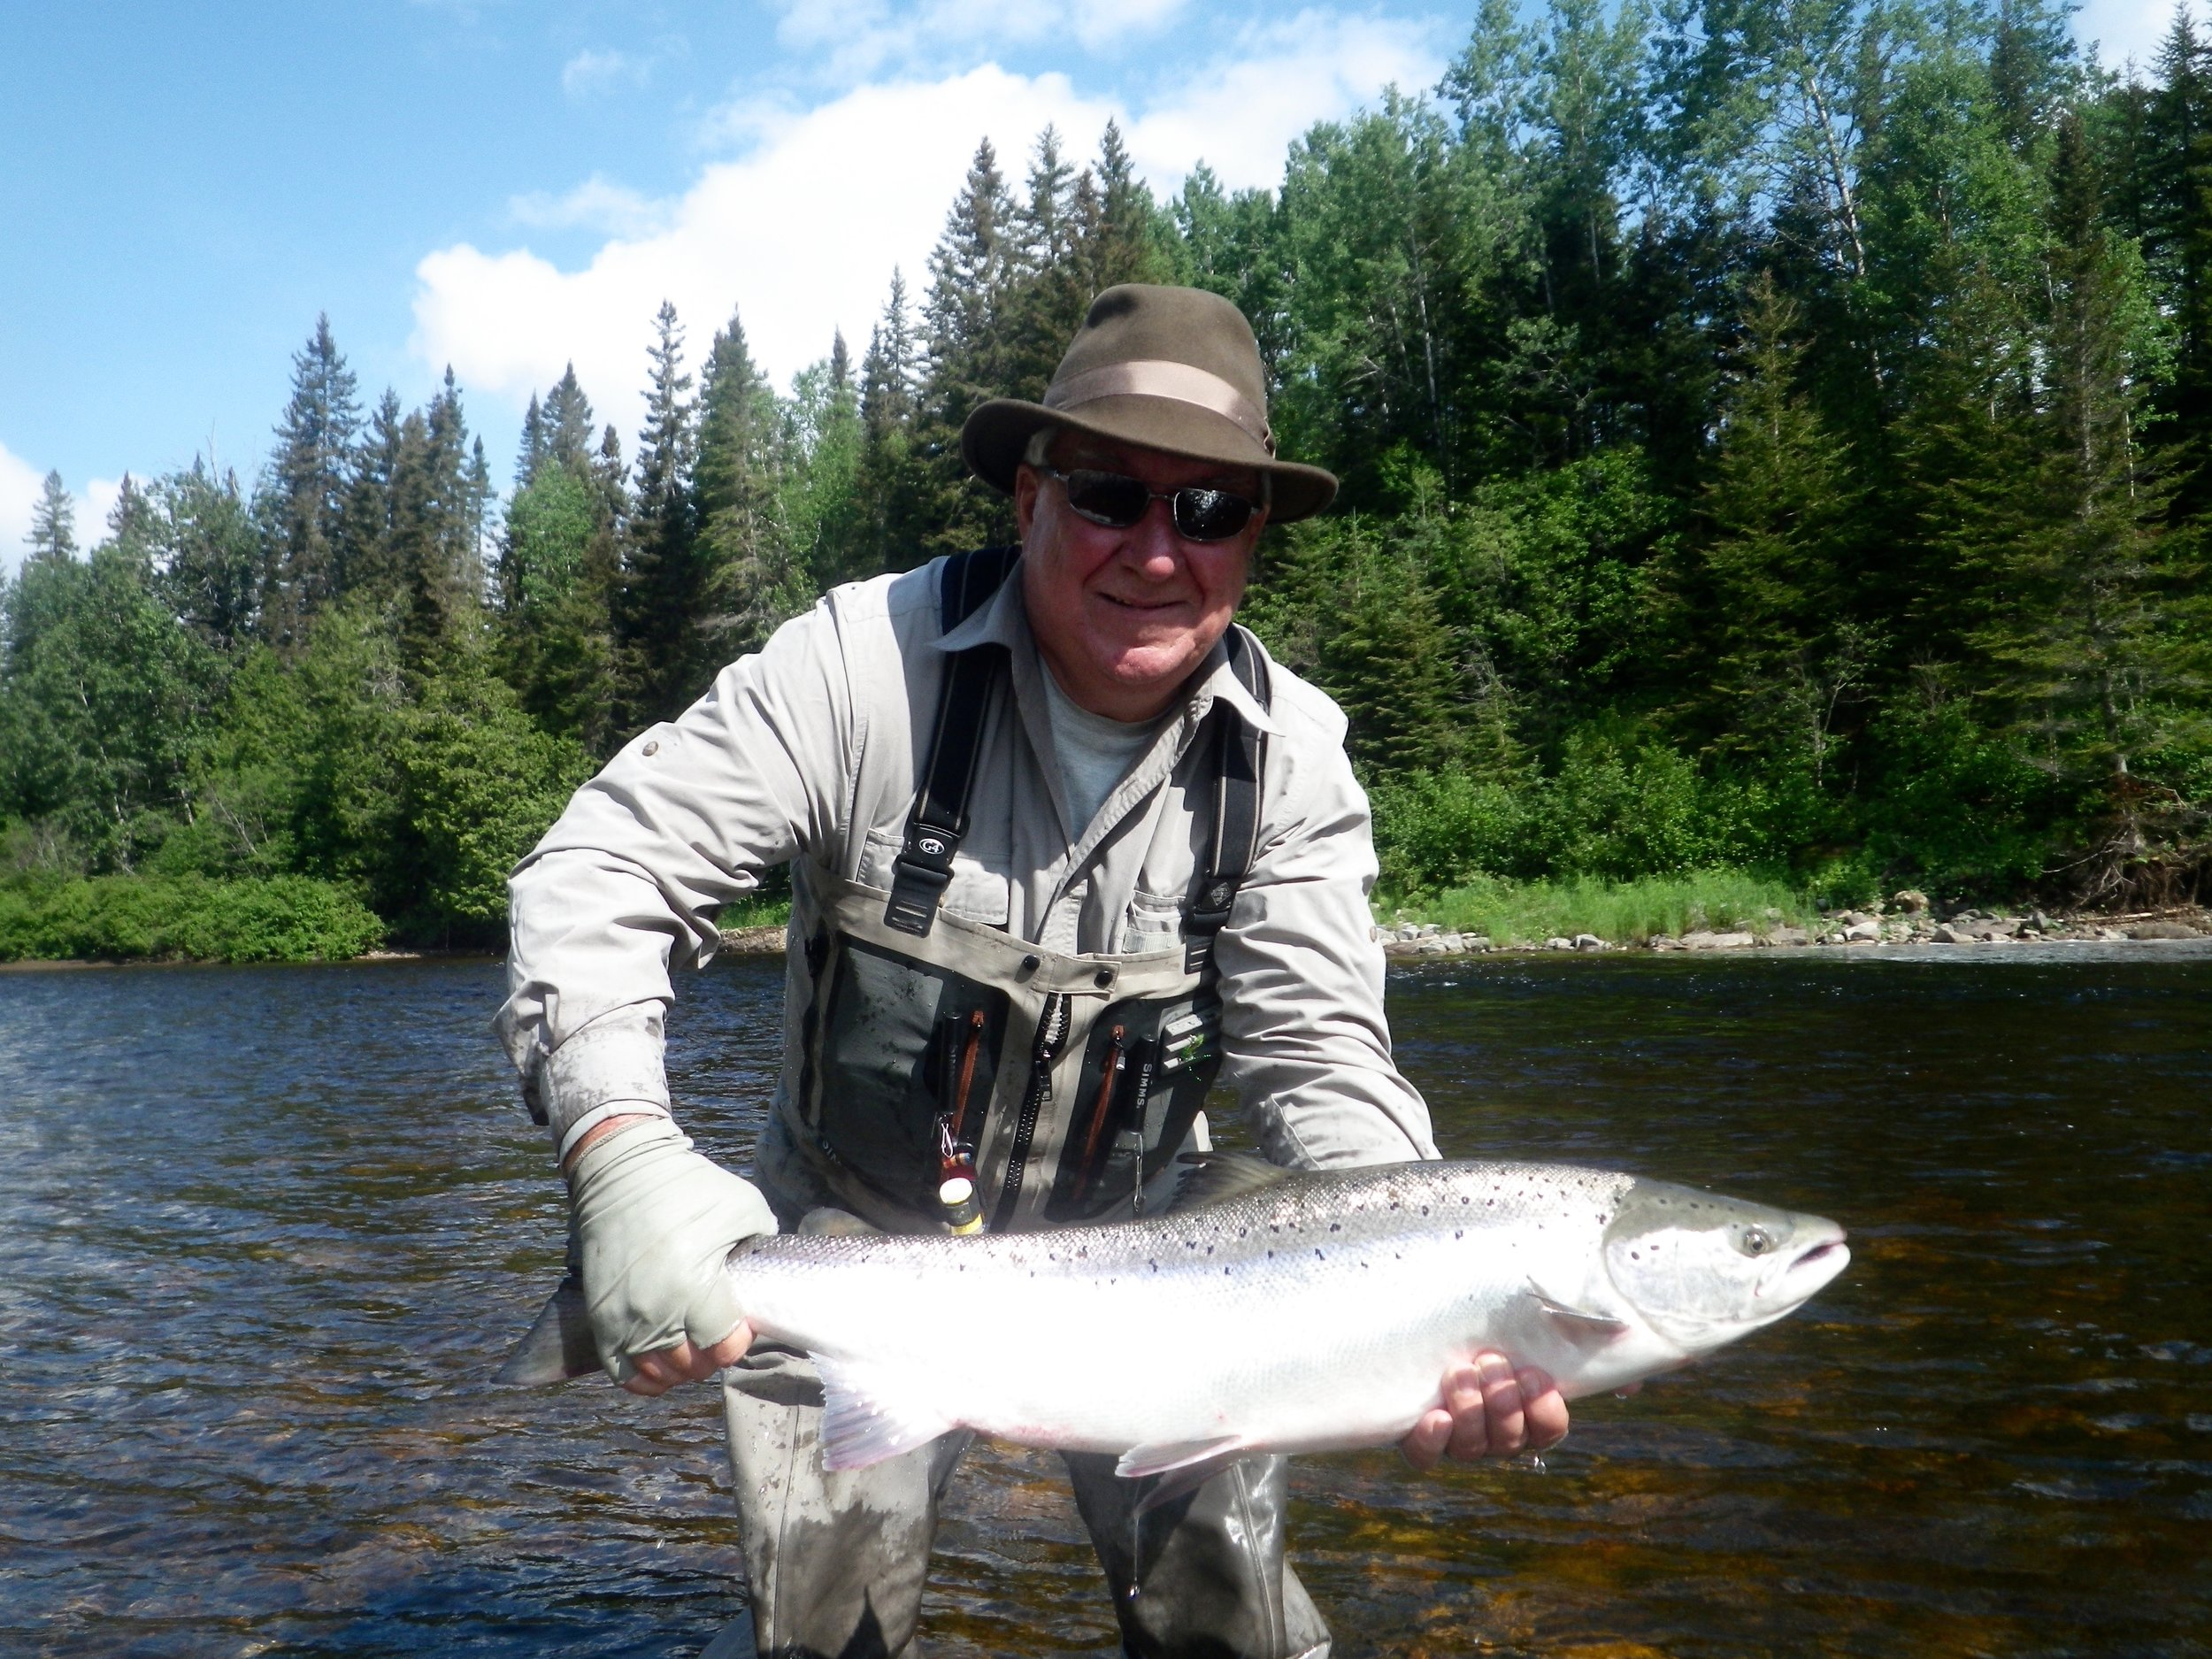 Fred Benere has been coming to Camp Bonaventure for many years, he sure knows how to catch them,Good start to the season Fred!